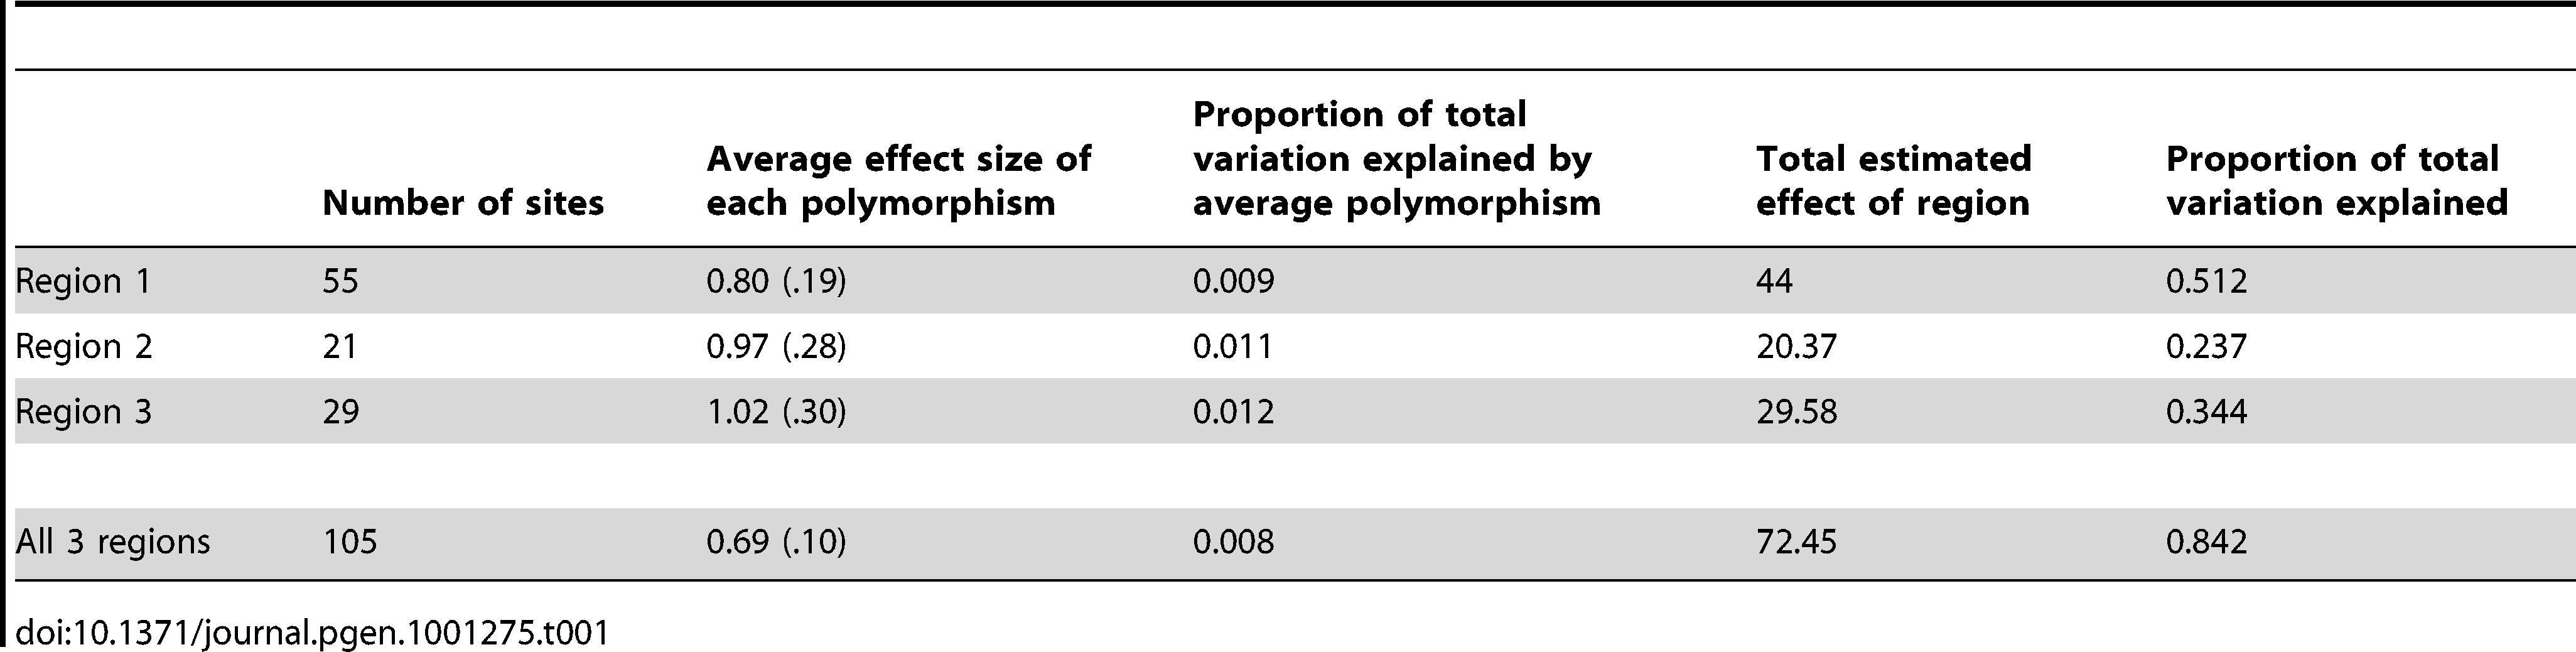 Estimation of polymorphism and region effect size.